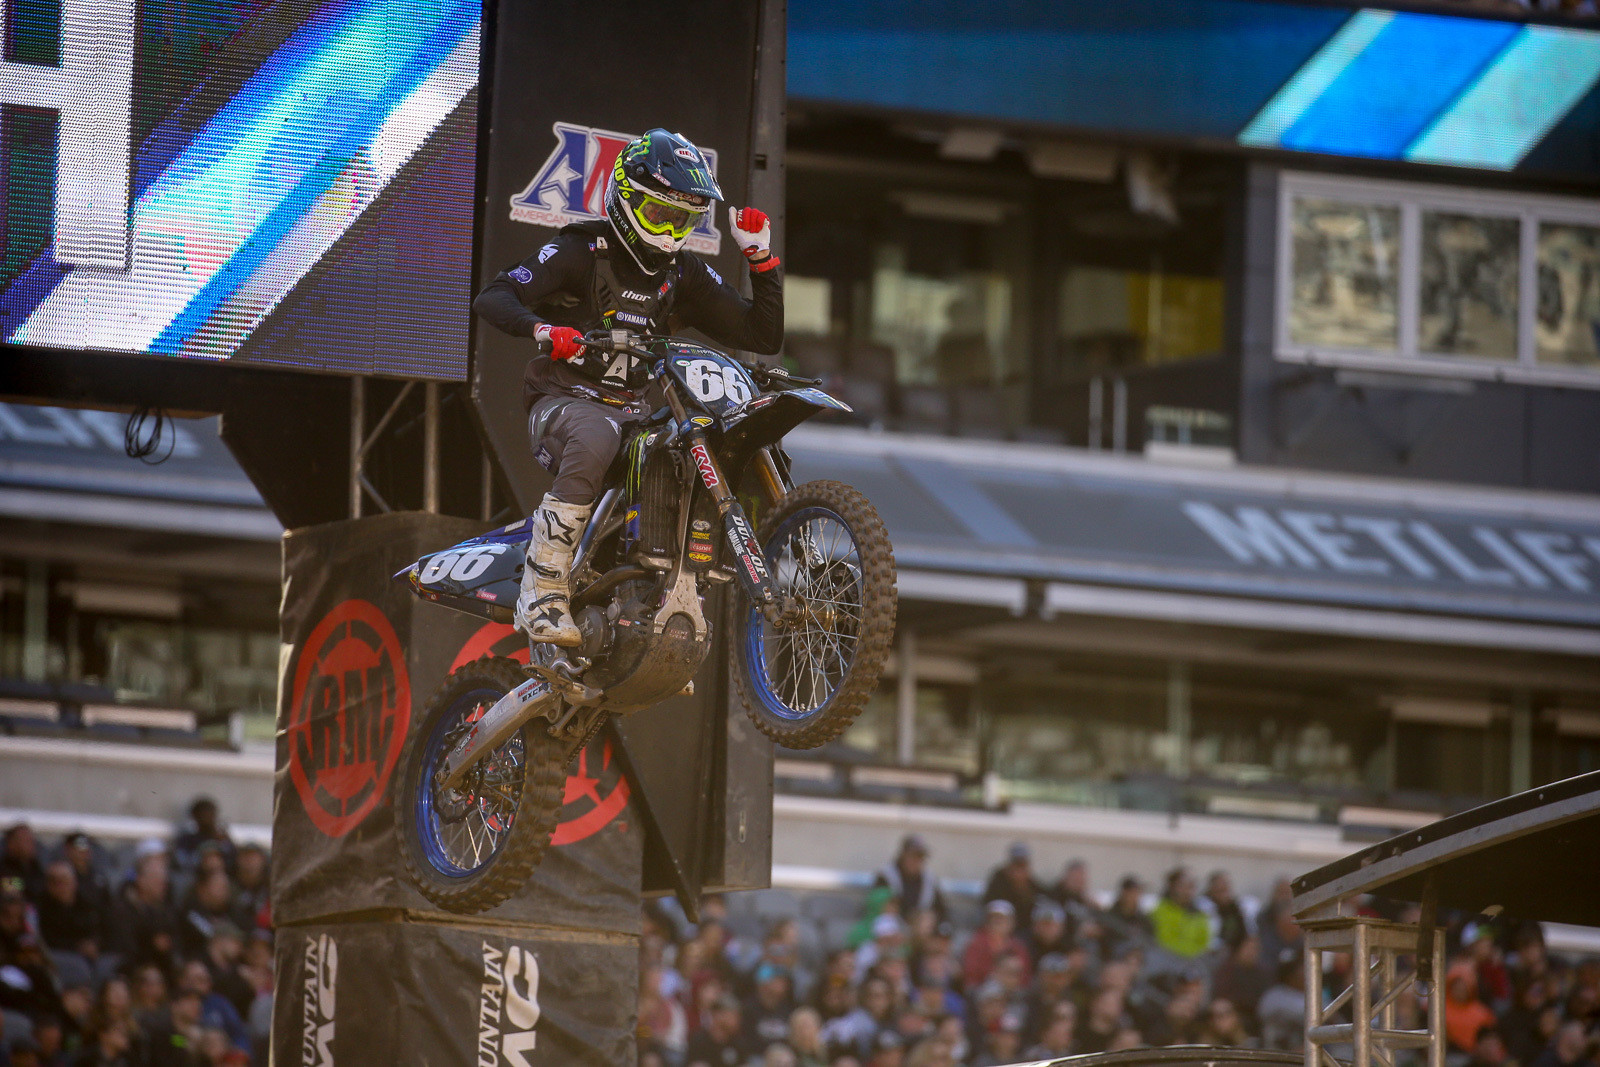 Mitchell Oldenburg had a great night in East Rutherford, with a win in his heat race, and a (spoiler alert) second in the 250 main. Check out the post-race chat with him by clicking the audio below.